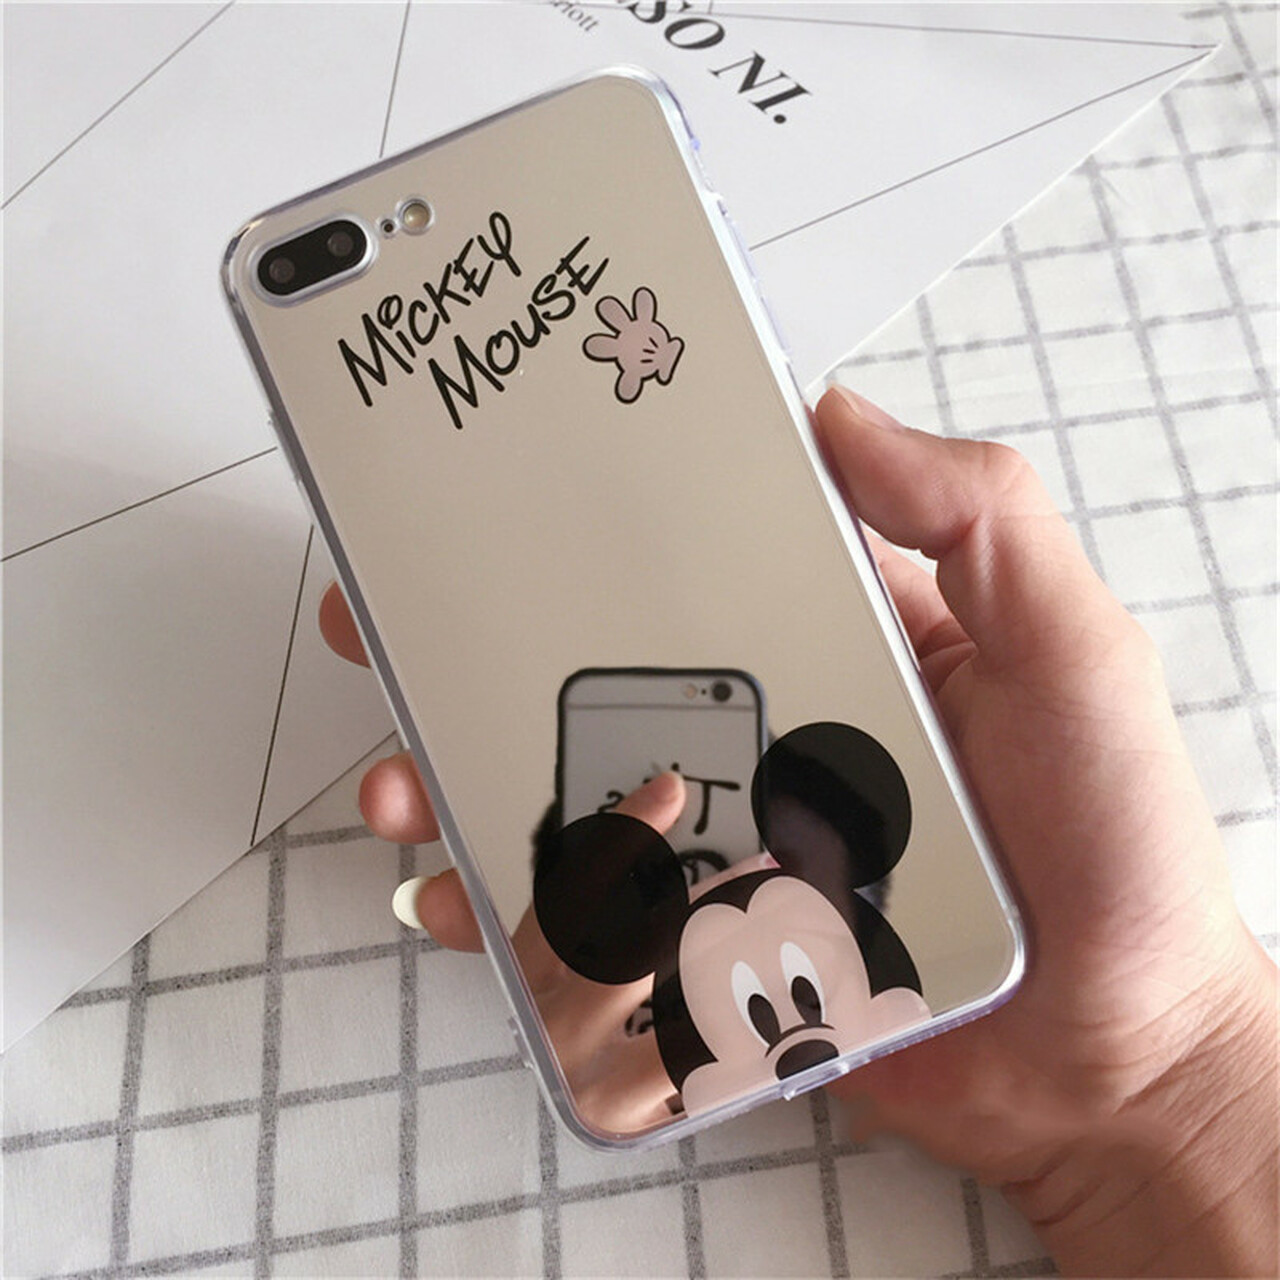 f8008c88322 ... Luxury Mirror Phone Bag Case for iPhone 6S 6 s 7 8 Plus Mickey Minnie  Silicone ...